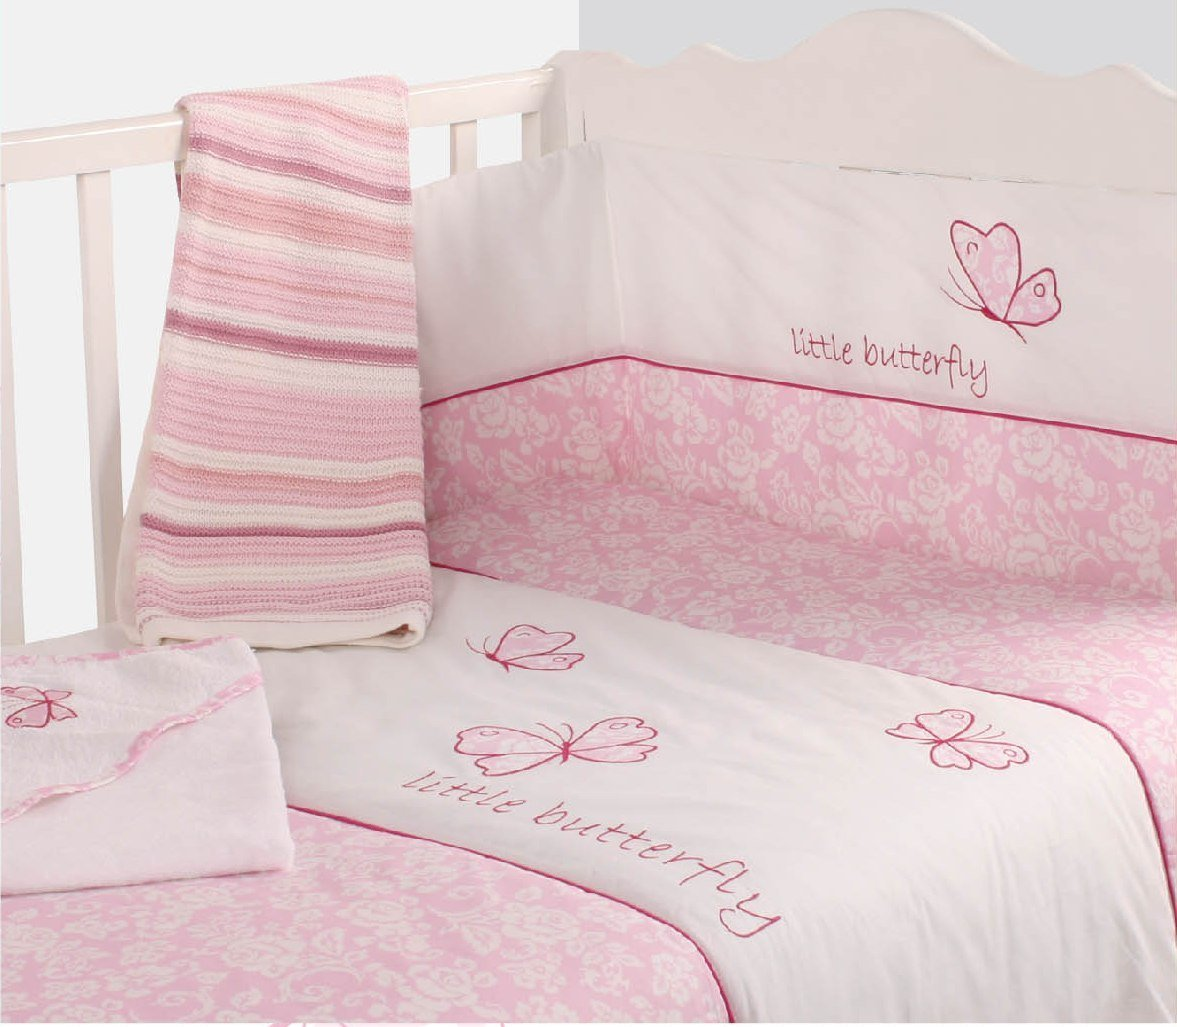 cot bedding sets nursery pink butterfly baby bale bedding set floral print reversible cot  quilt XXNAGOI